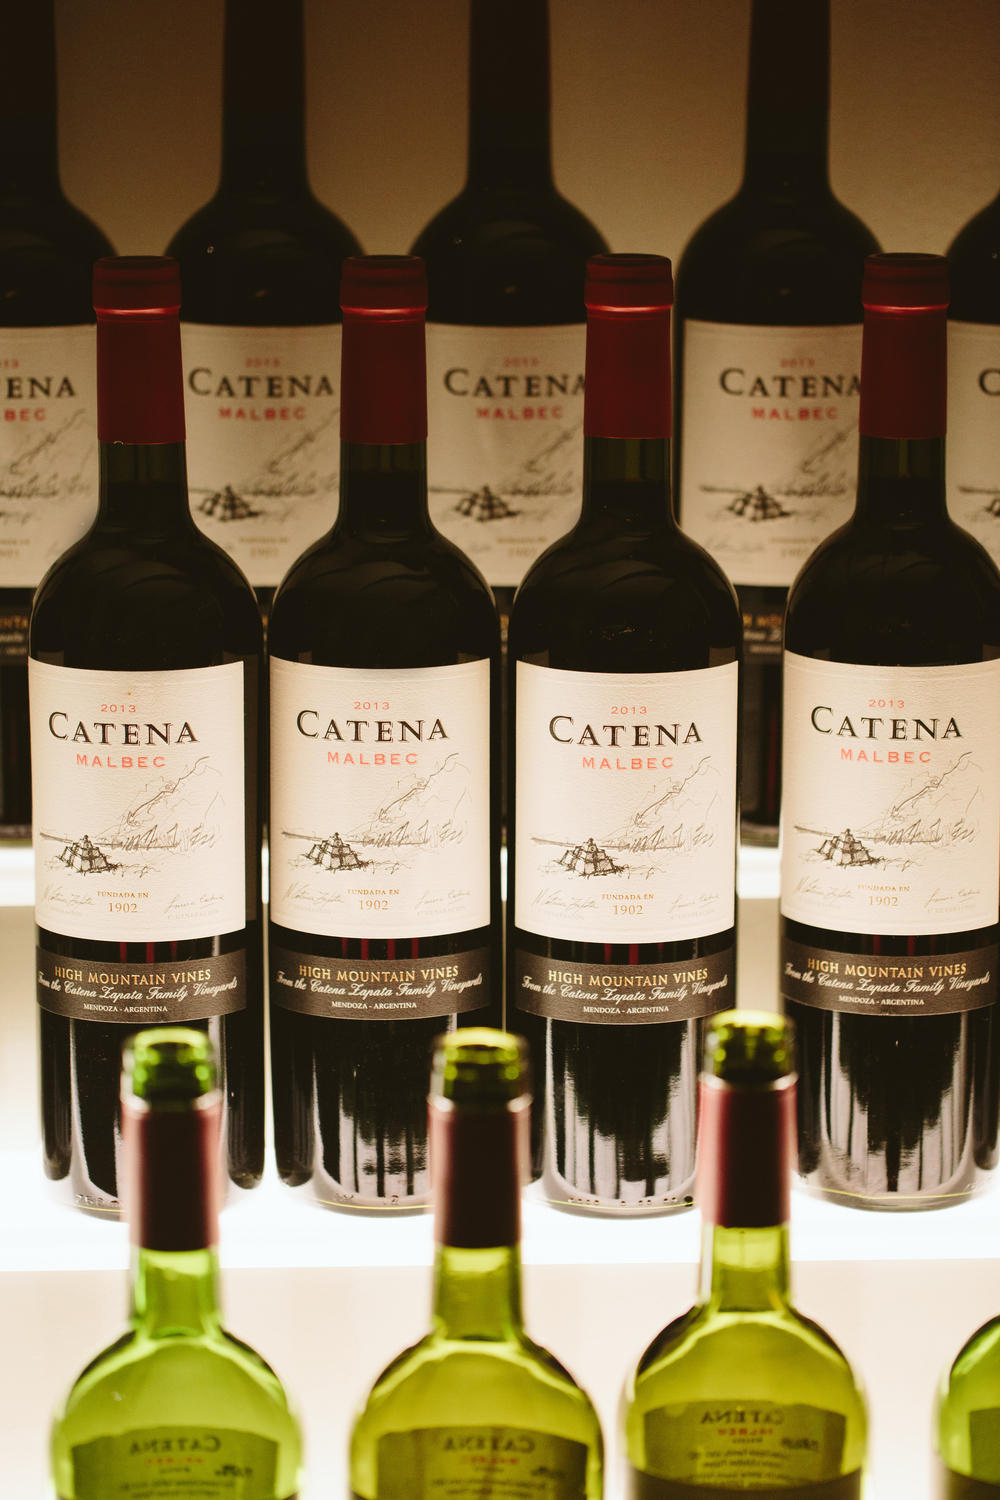 CATENA MALBEC DINNER BOSTON_BRIAN SAMUELS PHOTOGRAPHY_OCTOBER 2015 - 75.jpg